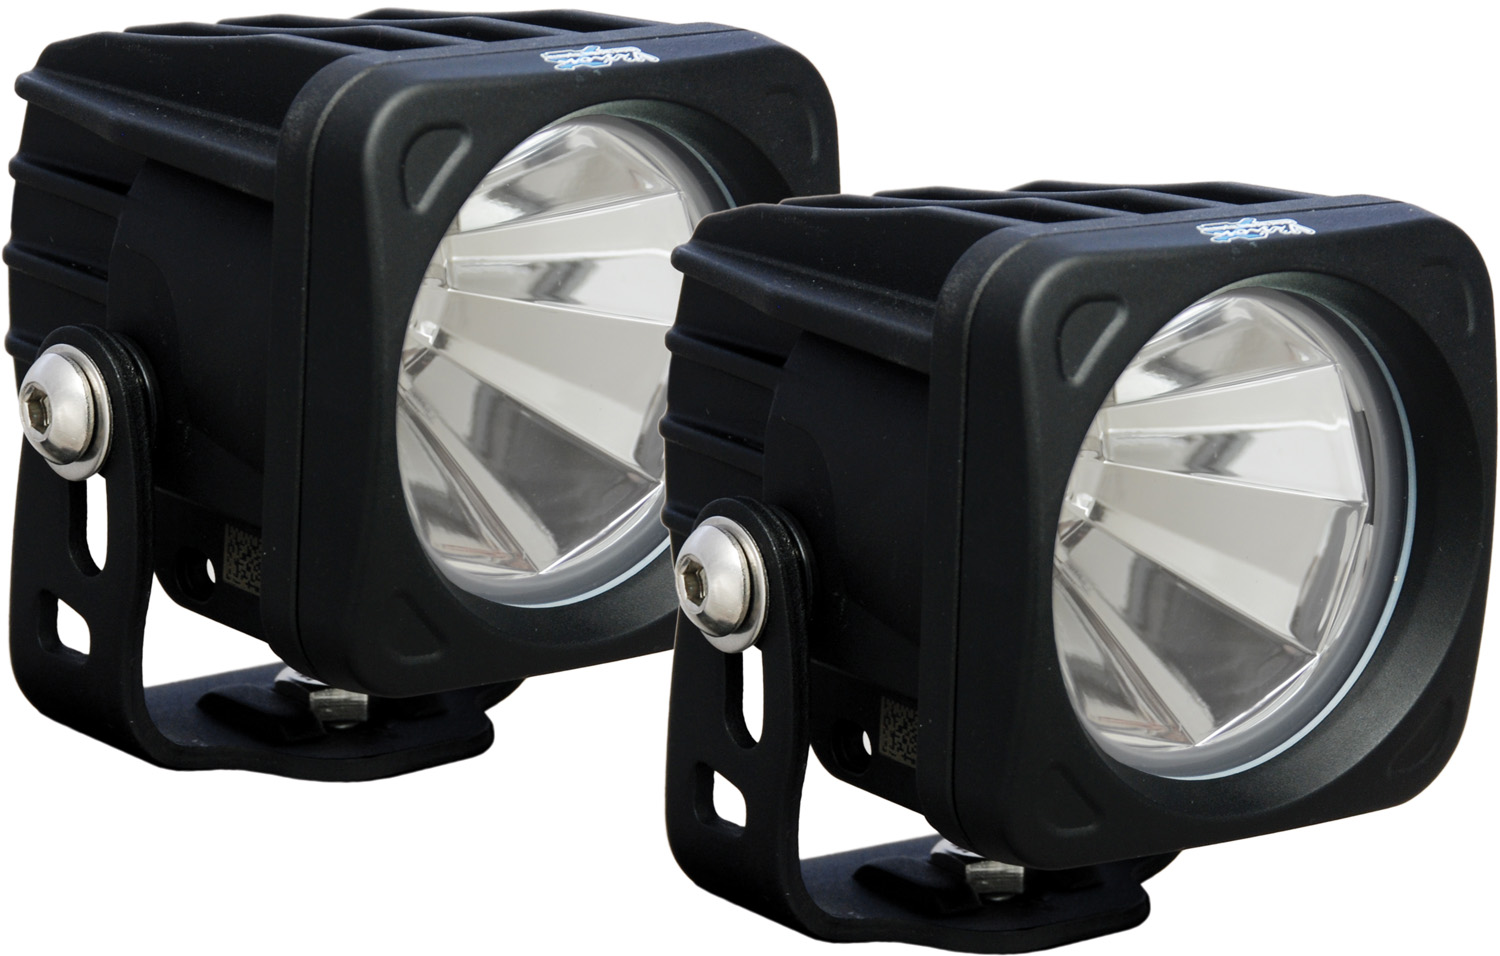 OPTIMUS SQUARE BLACK 1 10W LED 60° FLOOD KIT OF 2 LIGHTS